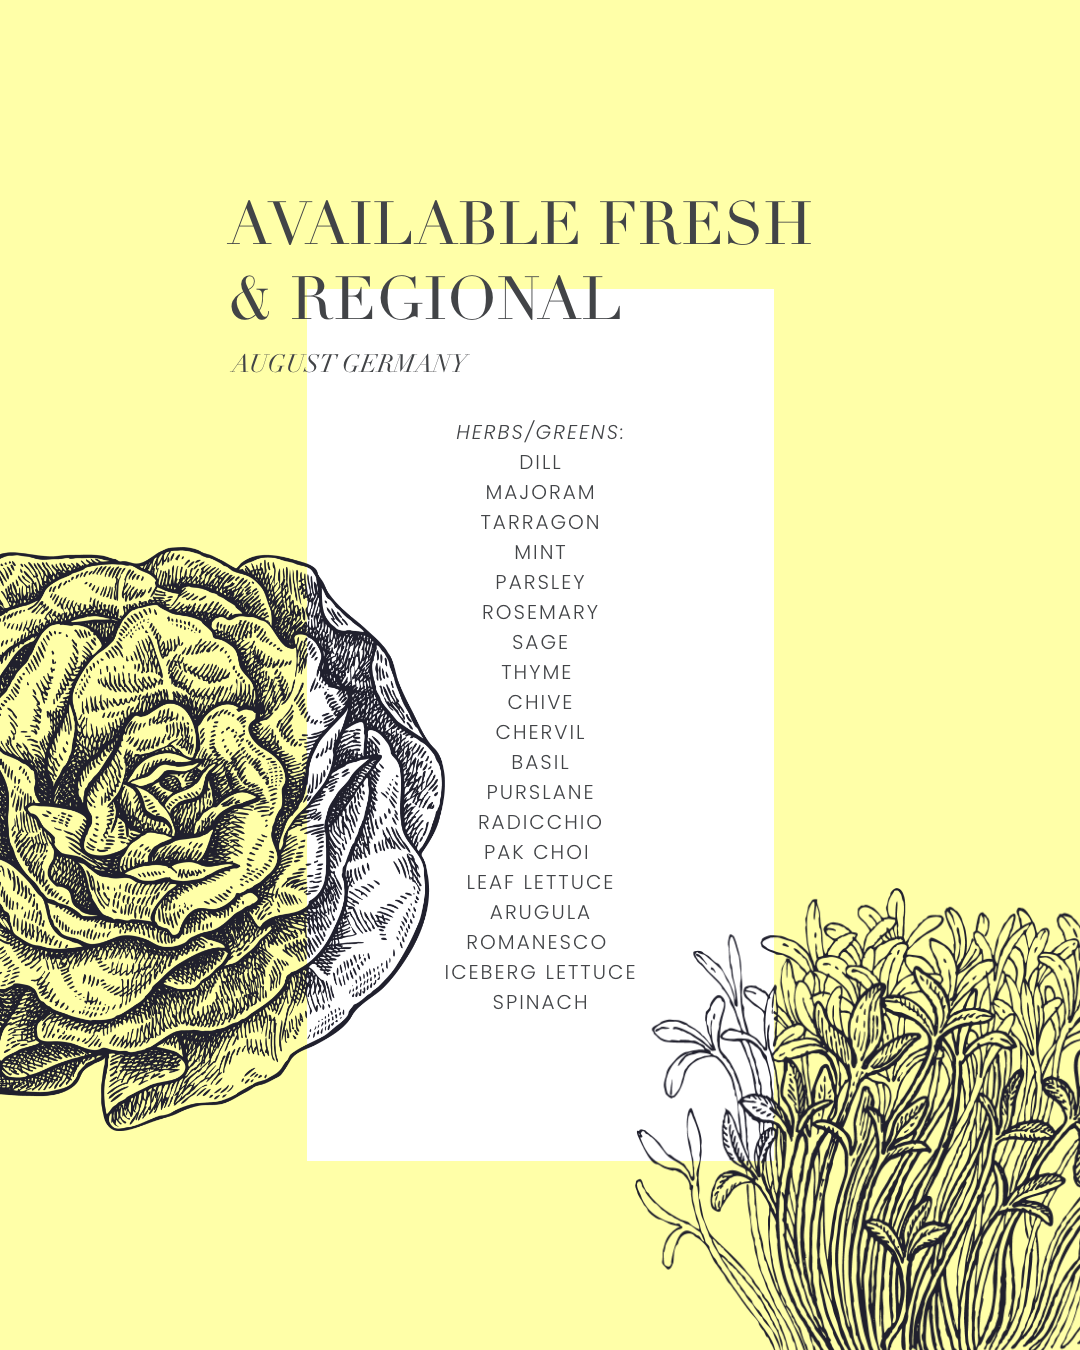 produce overview - available fresh and regional herbs and greens in august